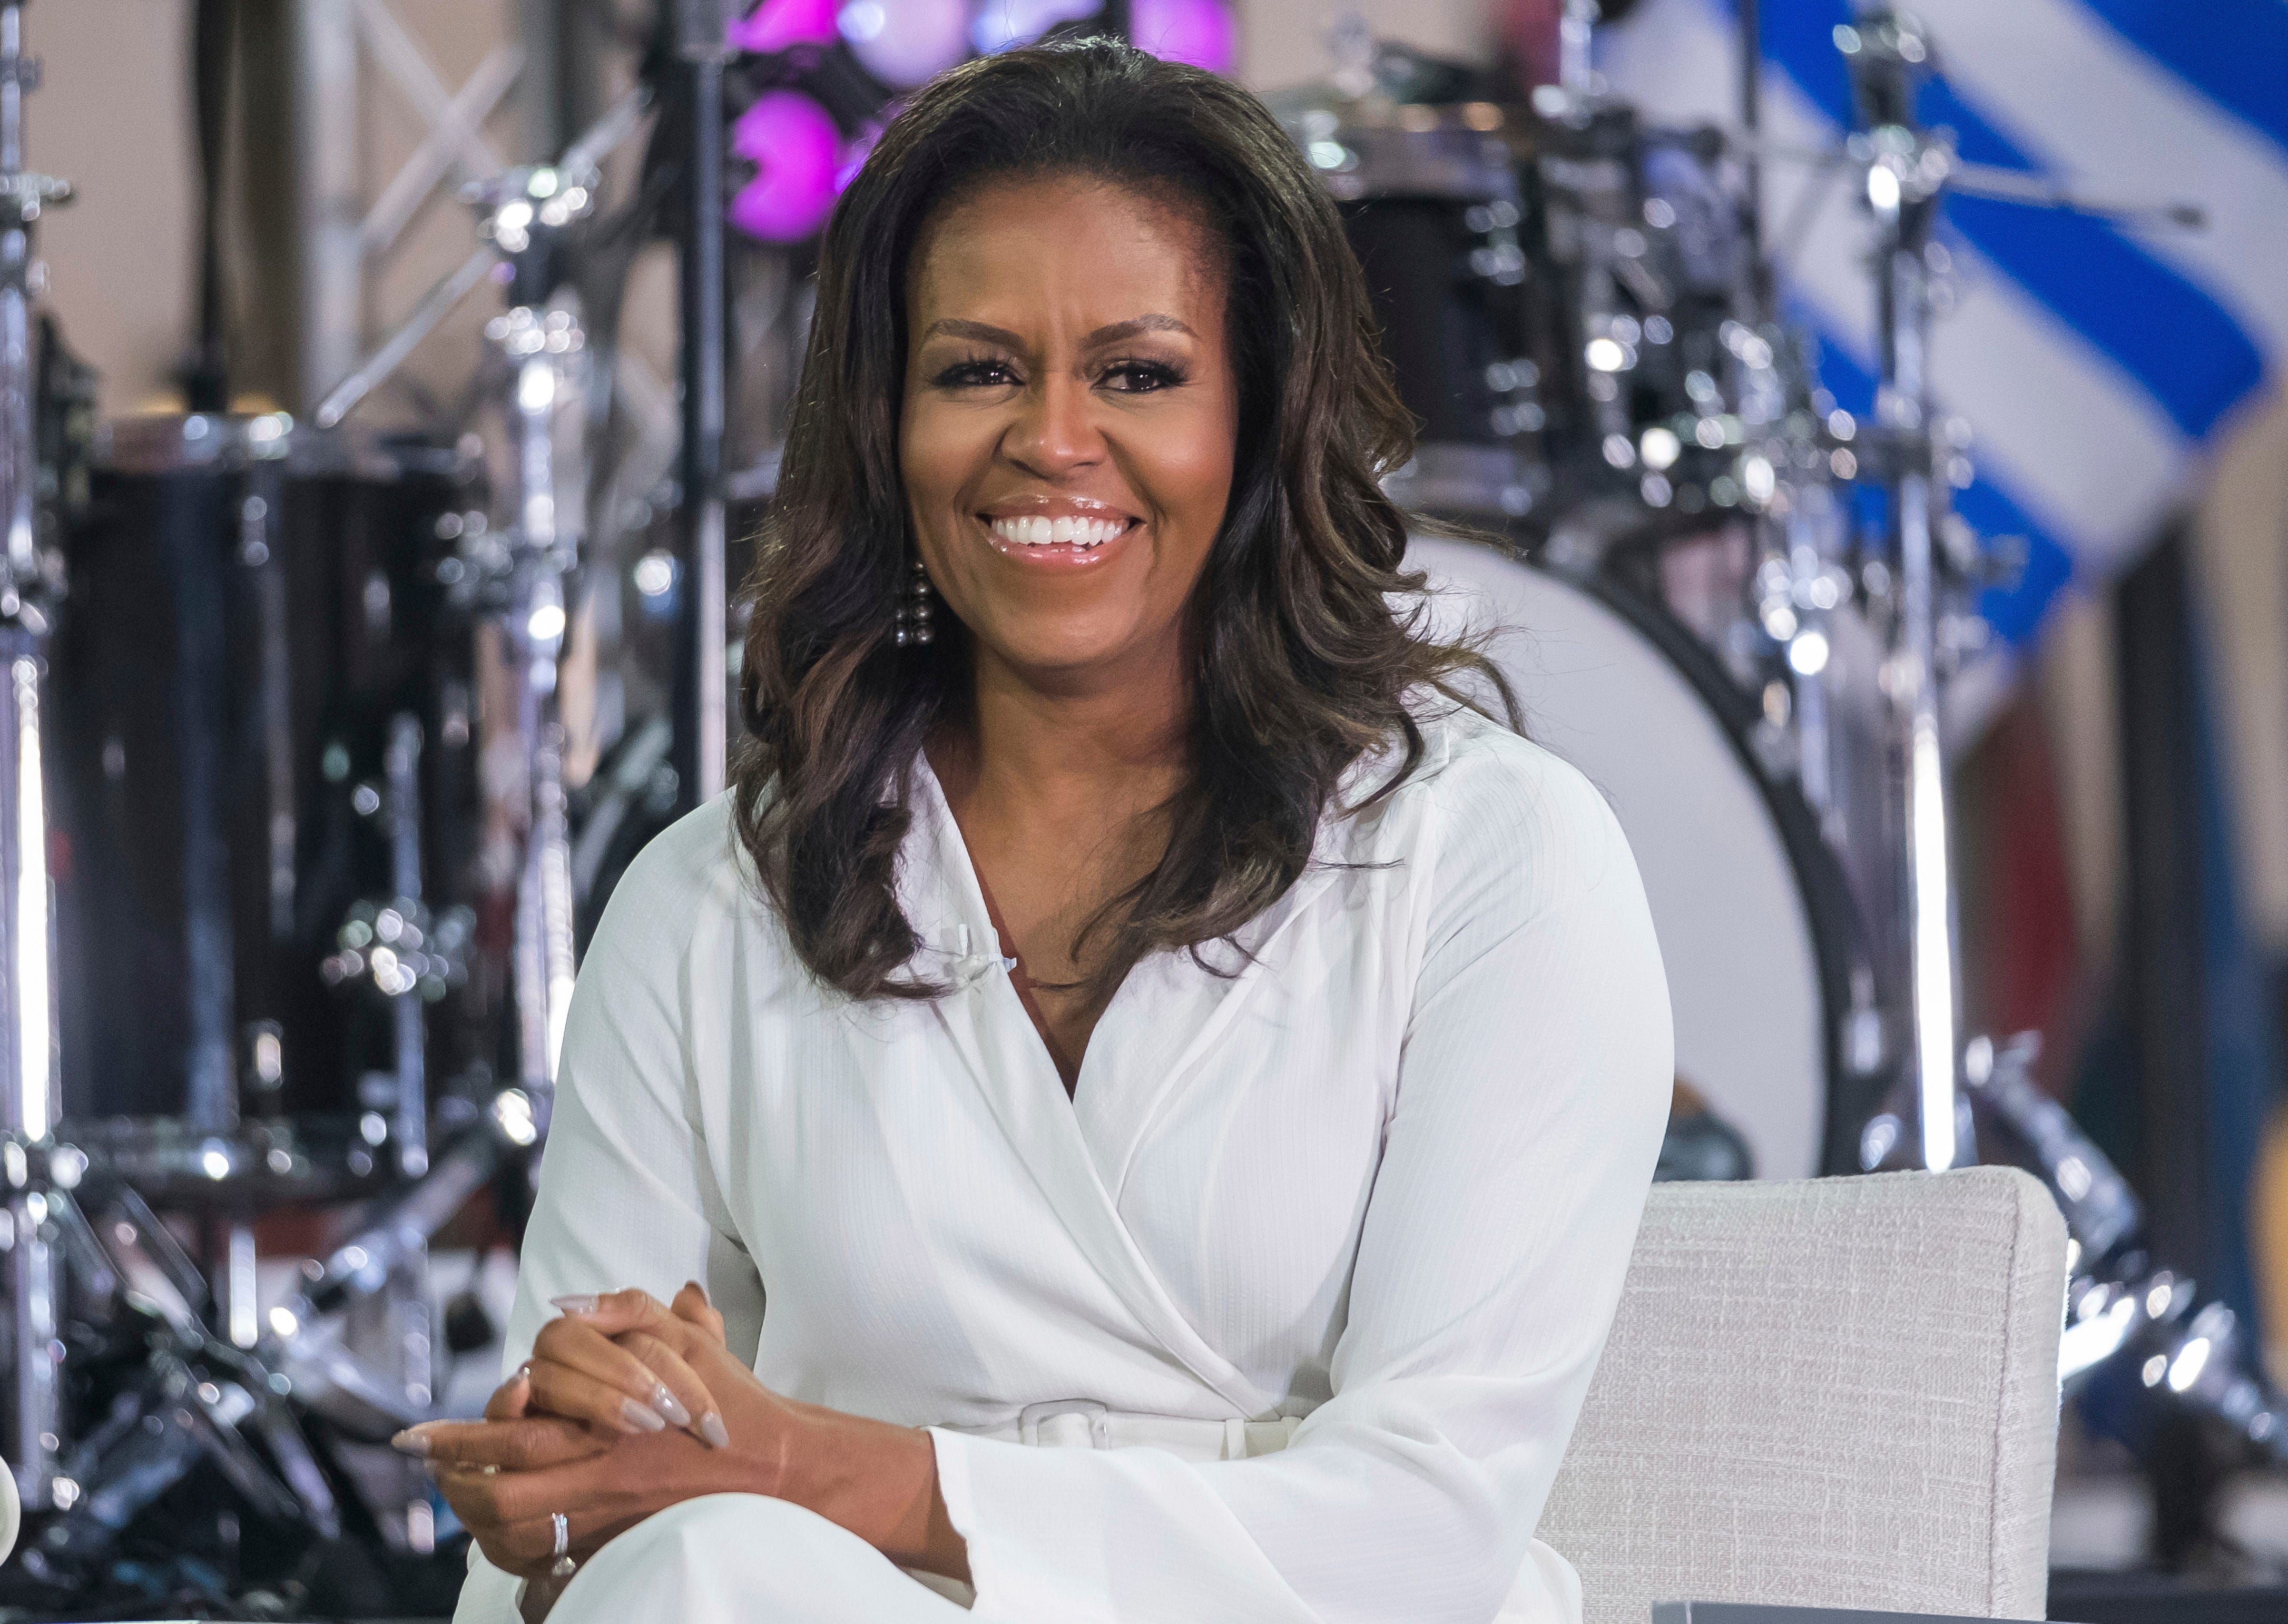 Fappening Michelle Obama nude photos 2019